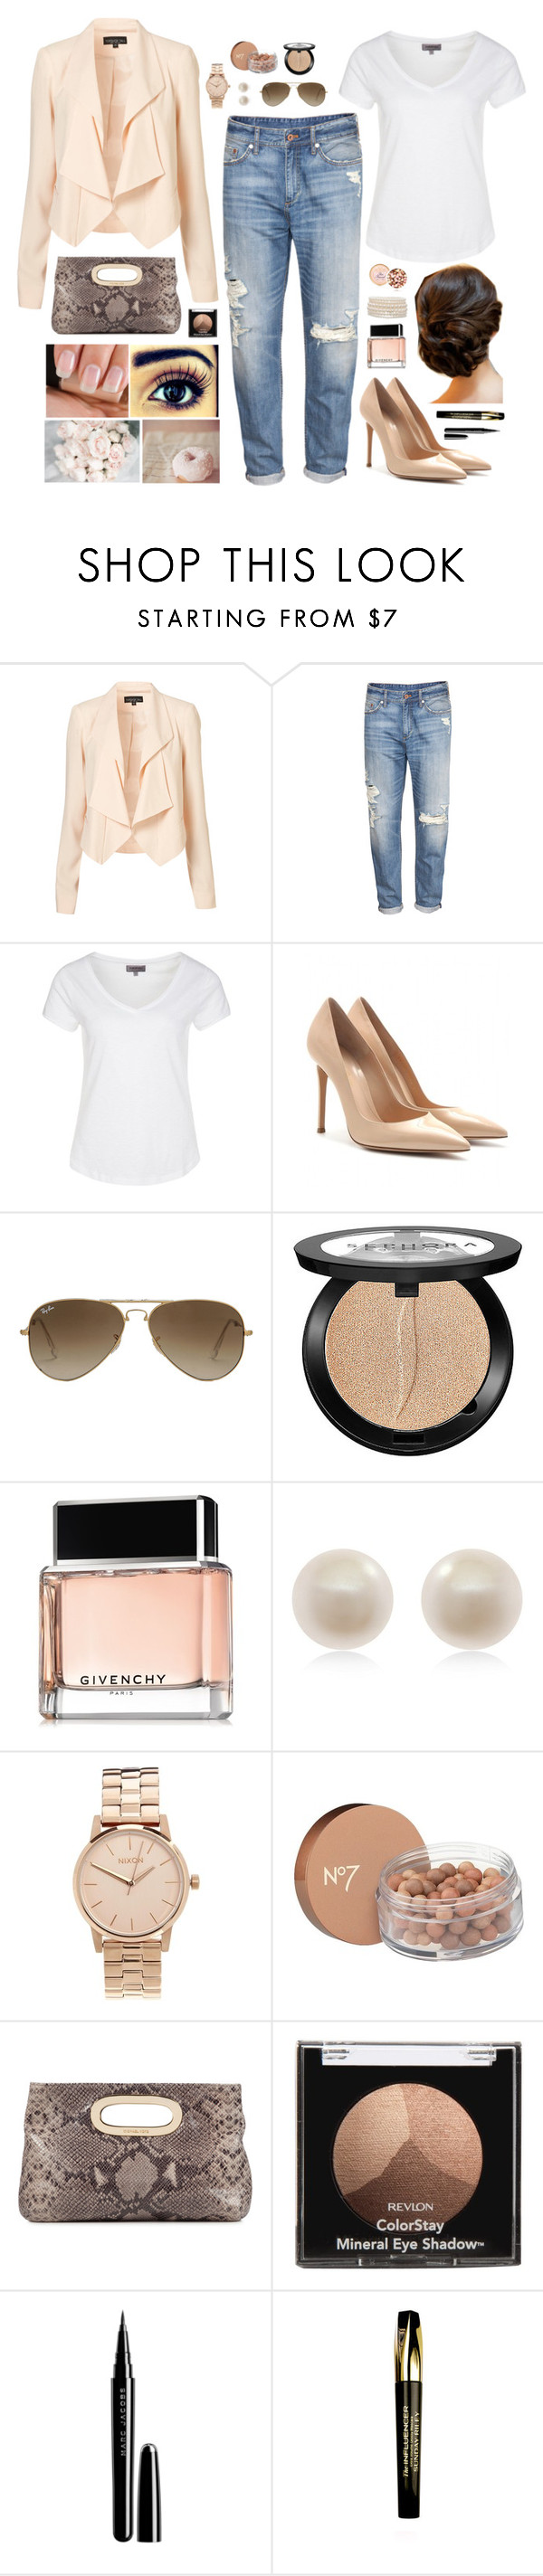 """""""A little bit of pink"""" by verzz ❤ liked on Polyvore featuring H&M, Zalando, Gianvito Rossi, Ray-Ban, Sephora Collection, Givenchy, Links of London, Nixon, Boots No7 and MICHAEL Michael Kors"""